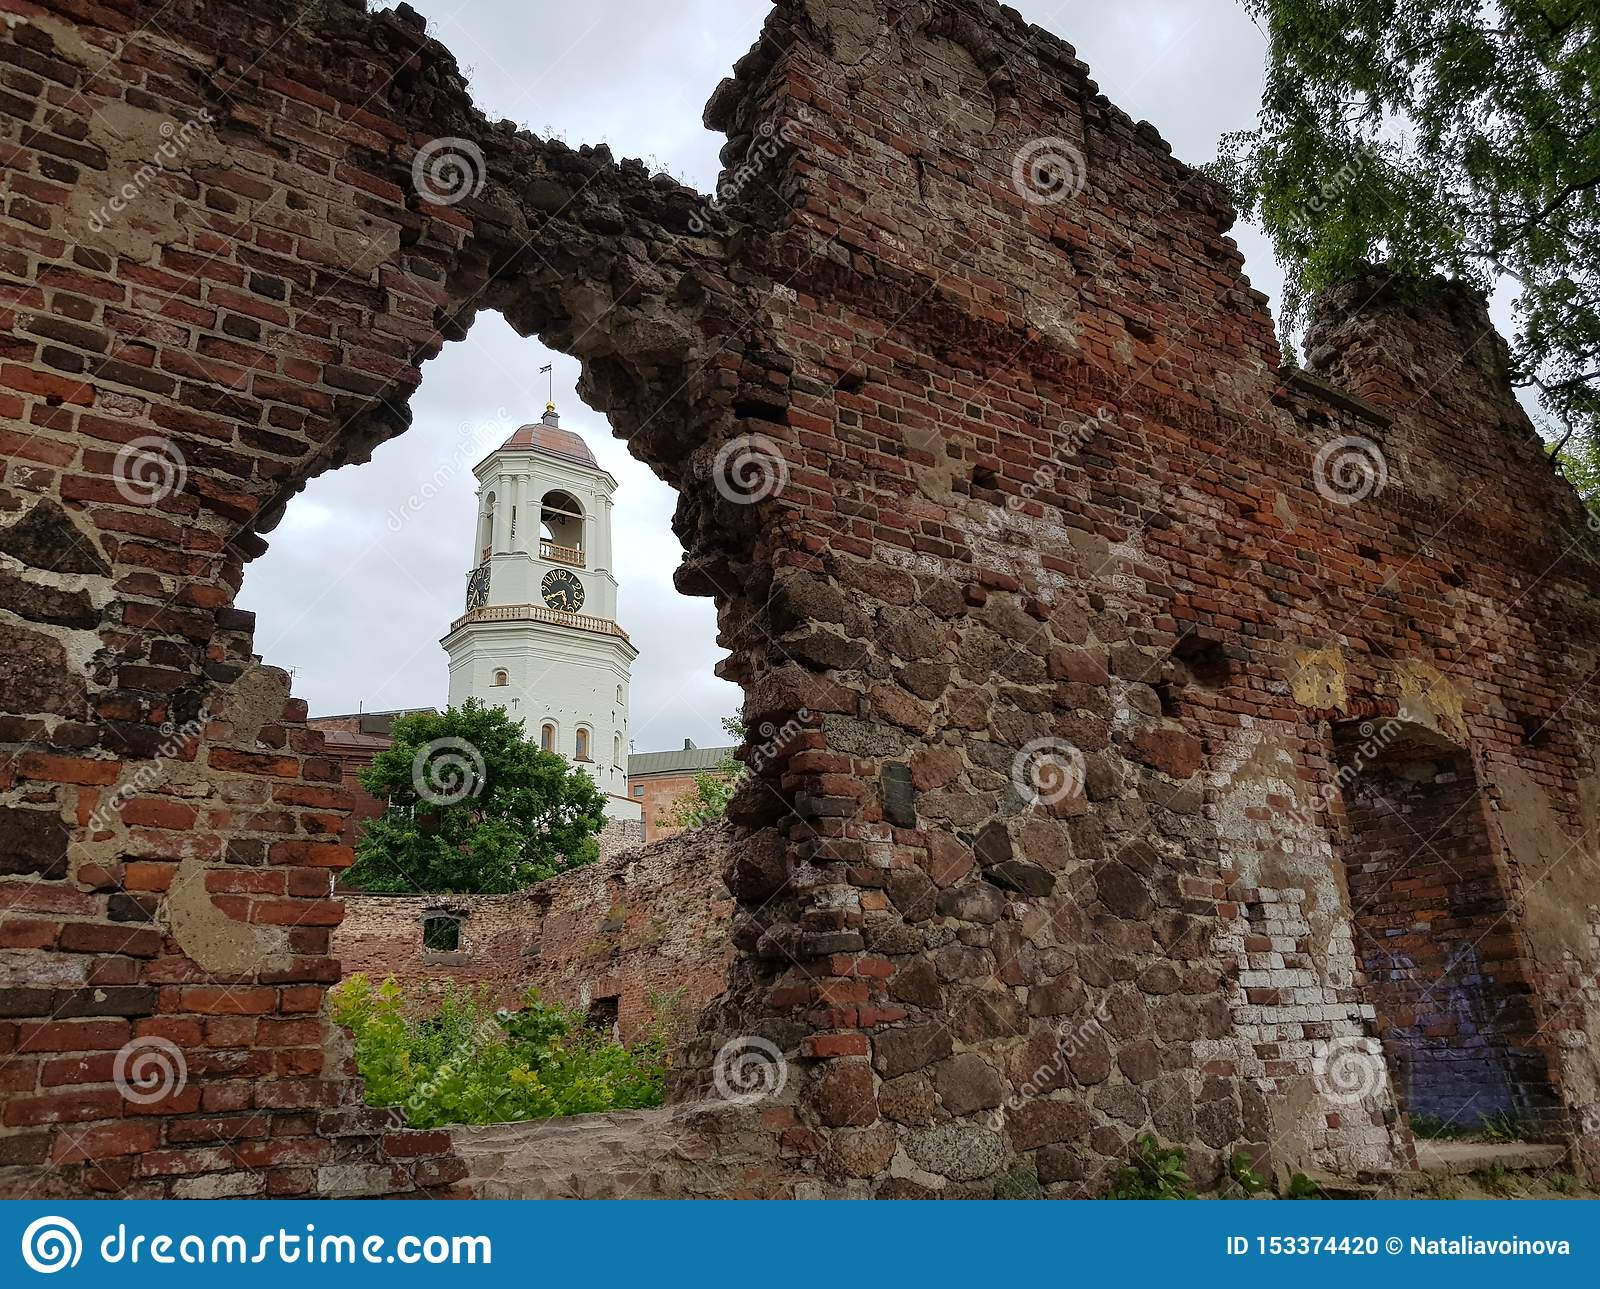 Vyborg. View of the Clock Tower through the window of the destroyed house.